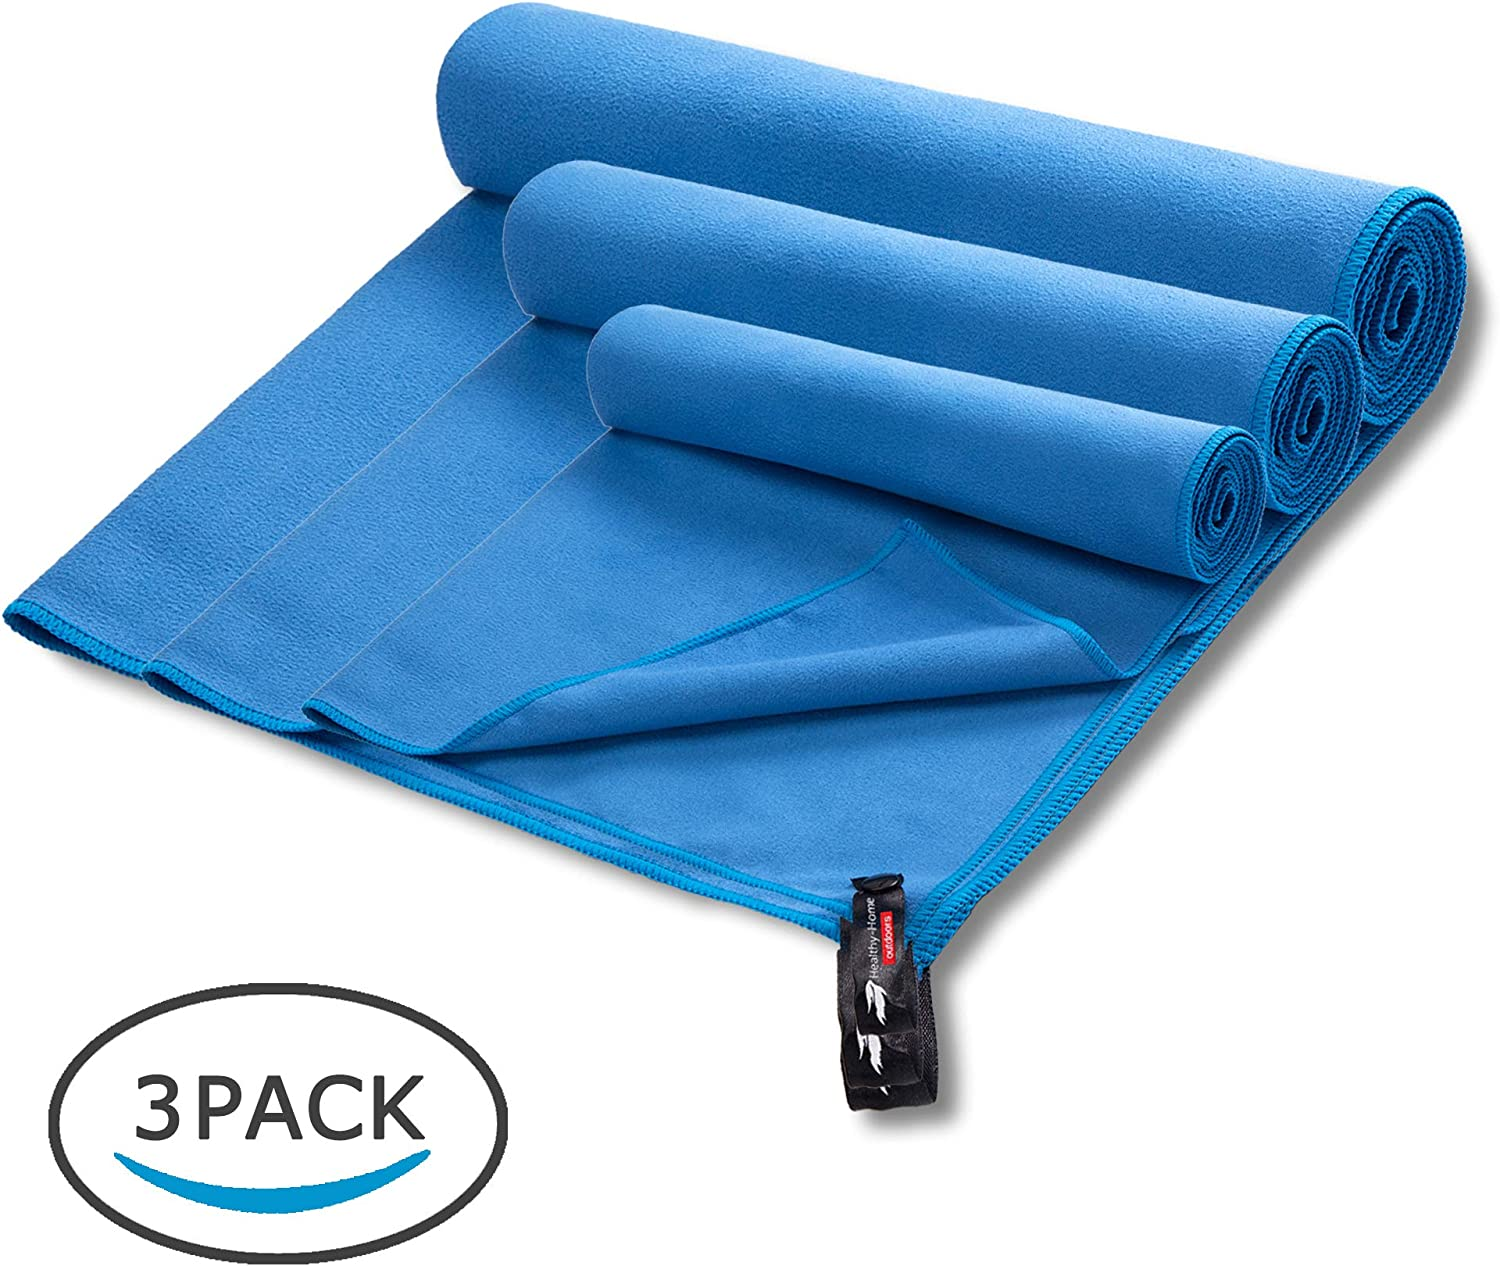 Perfect for Sport Golf Super Absorbent and Quick Drying Beach Workout Sweat Gym Swimming Healthy-Home Microfiber Travel Towel Set+Drawstring Bag Yoga Camping.